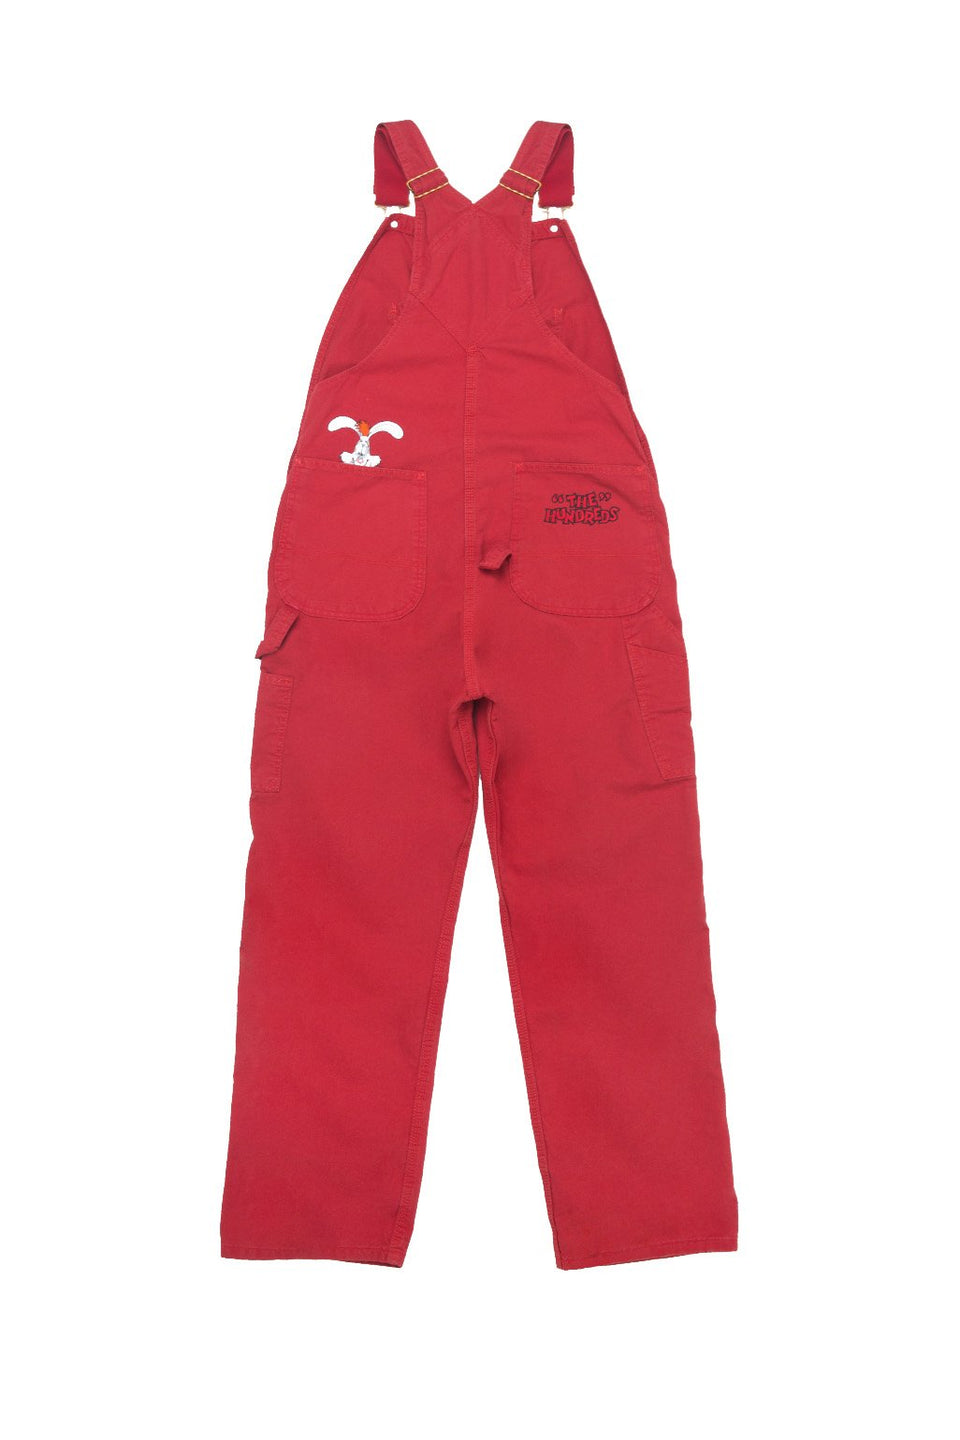 Roger Overalls